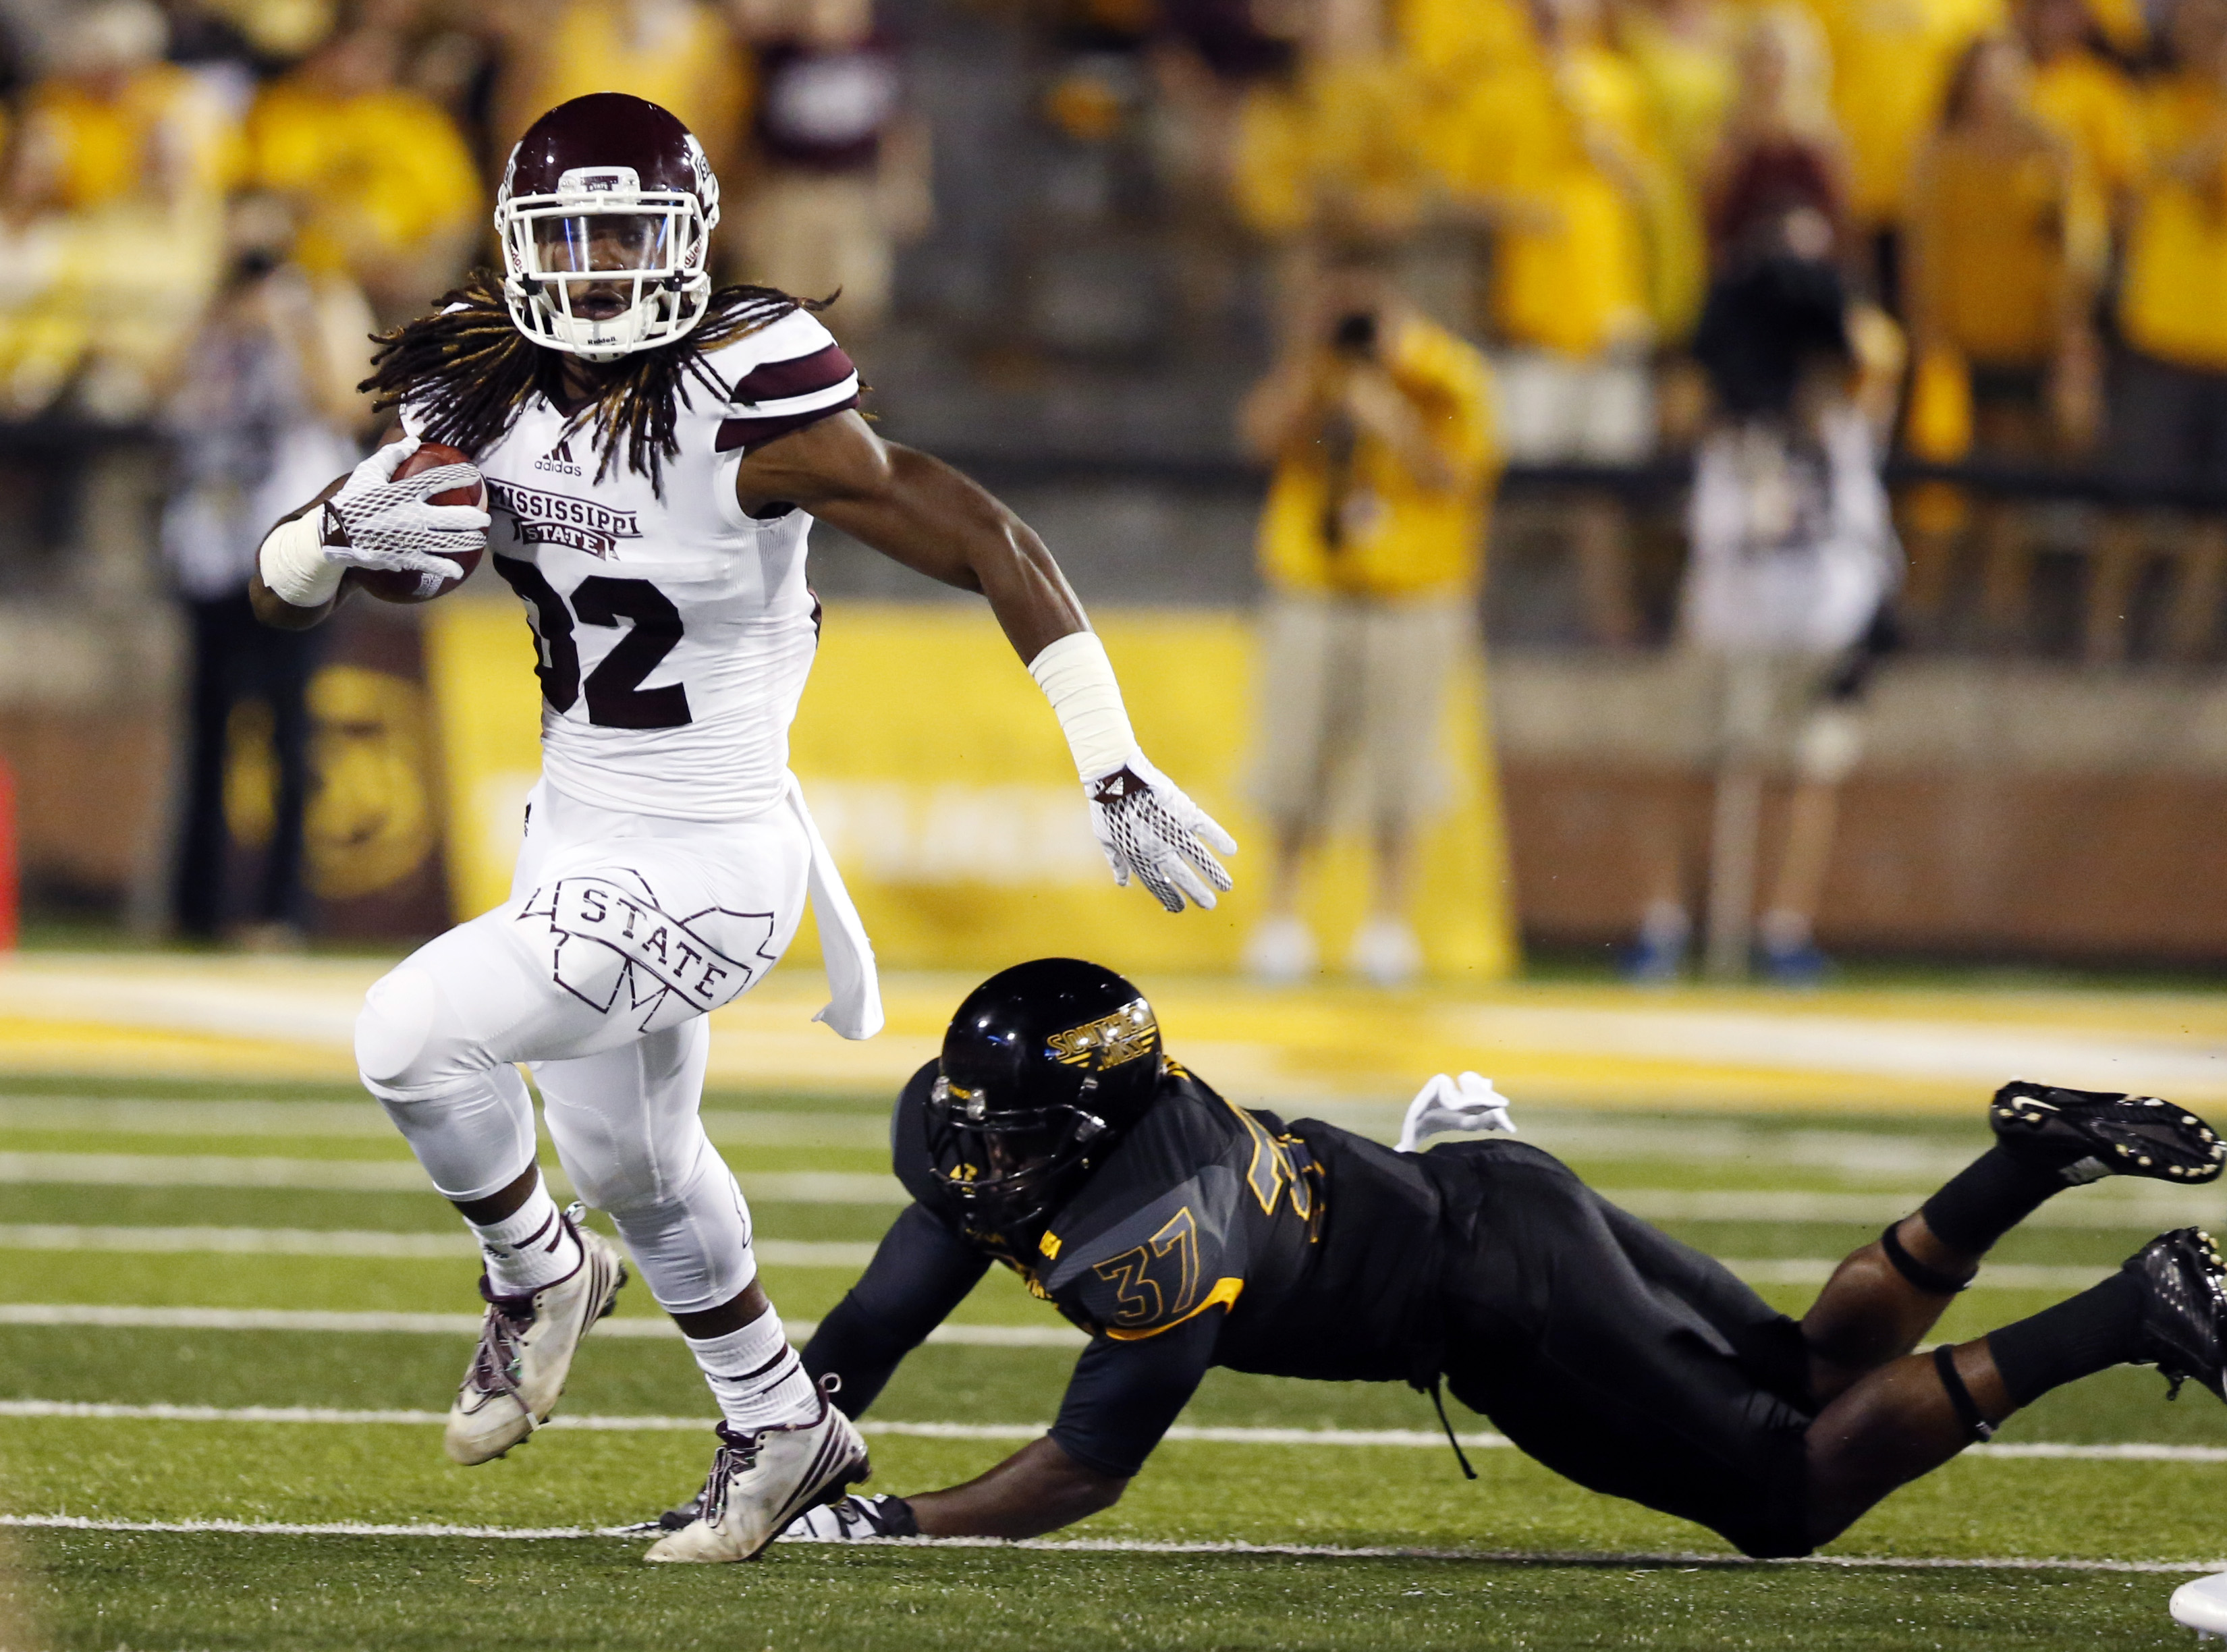 Mississippi State running back Ashton Shumpert (32) runs past an attempted tackle by Southern Mississippi linebacker Sherrod Ruff (37) during an NCAA college football game in Hattiesburg Miss., Saturday, Sept. 5, 2015. (AP Photo/Rogelio V. Solis)